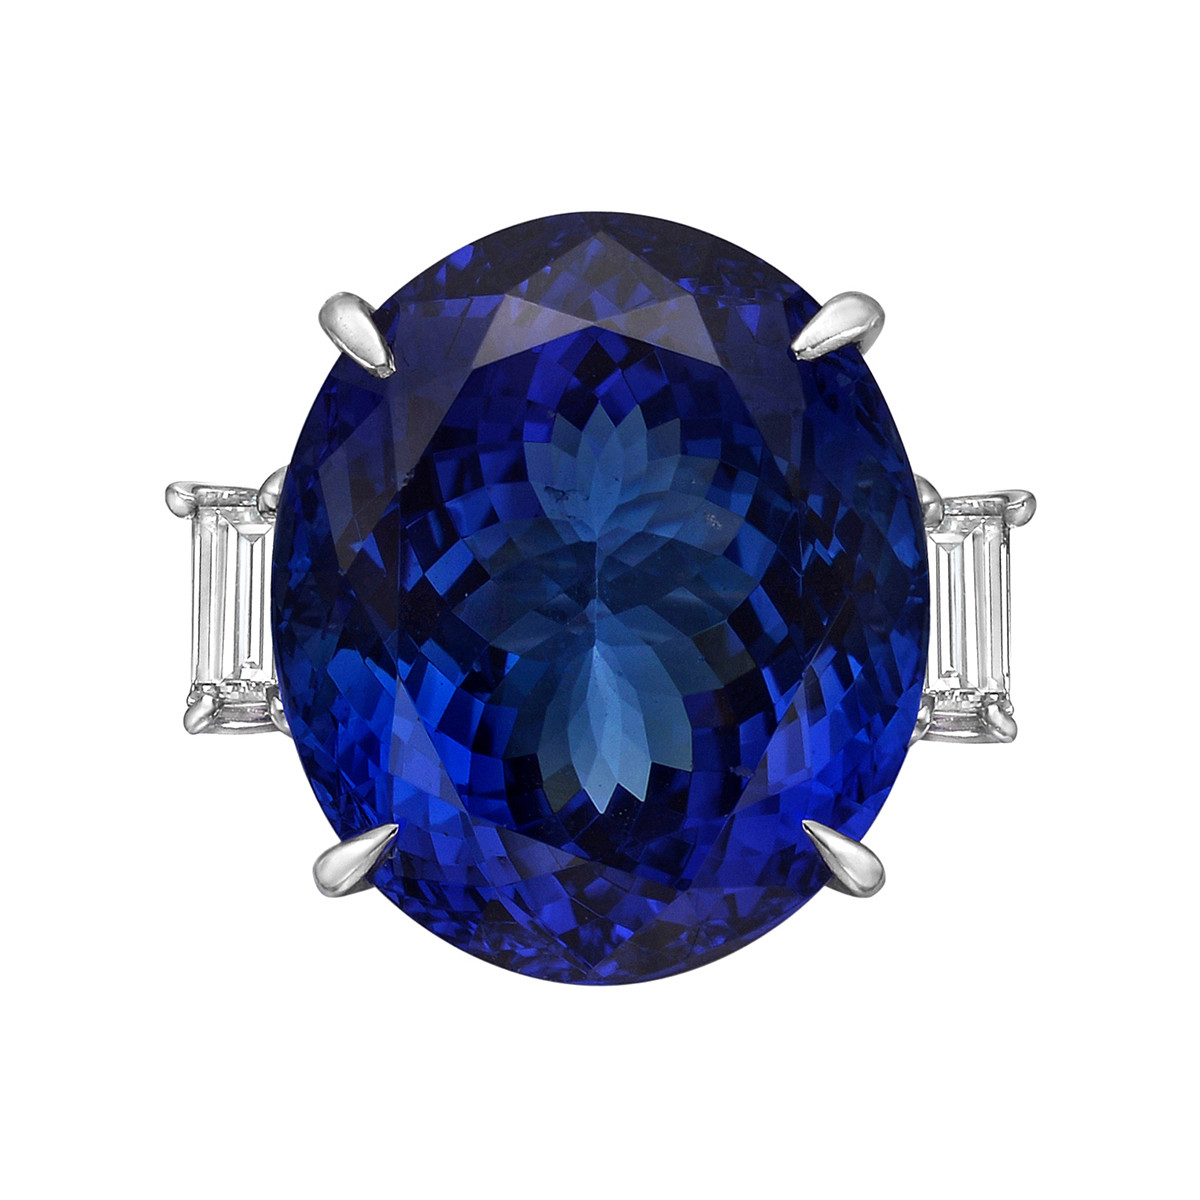 23.17 Carat Tanzanite & Diamond Ring